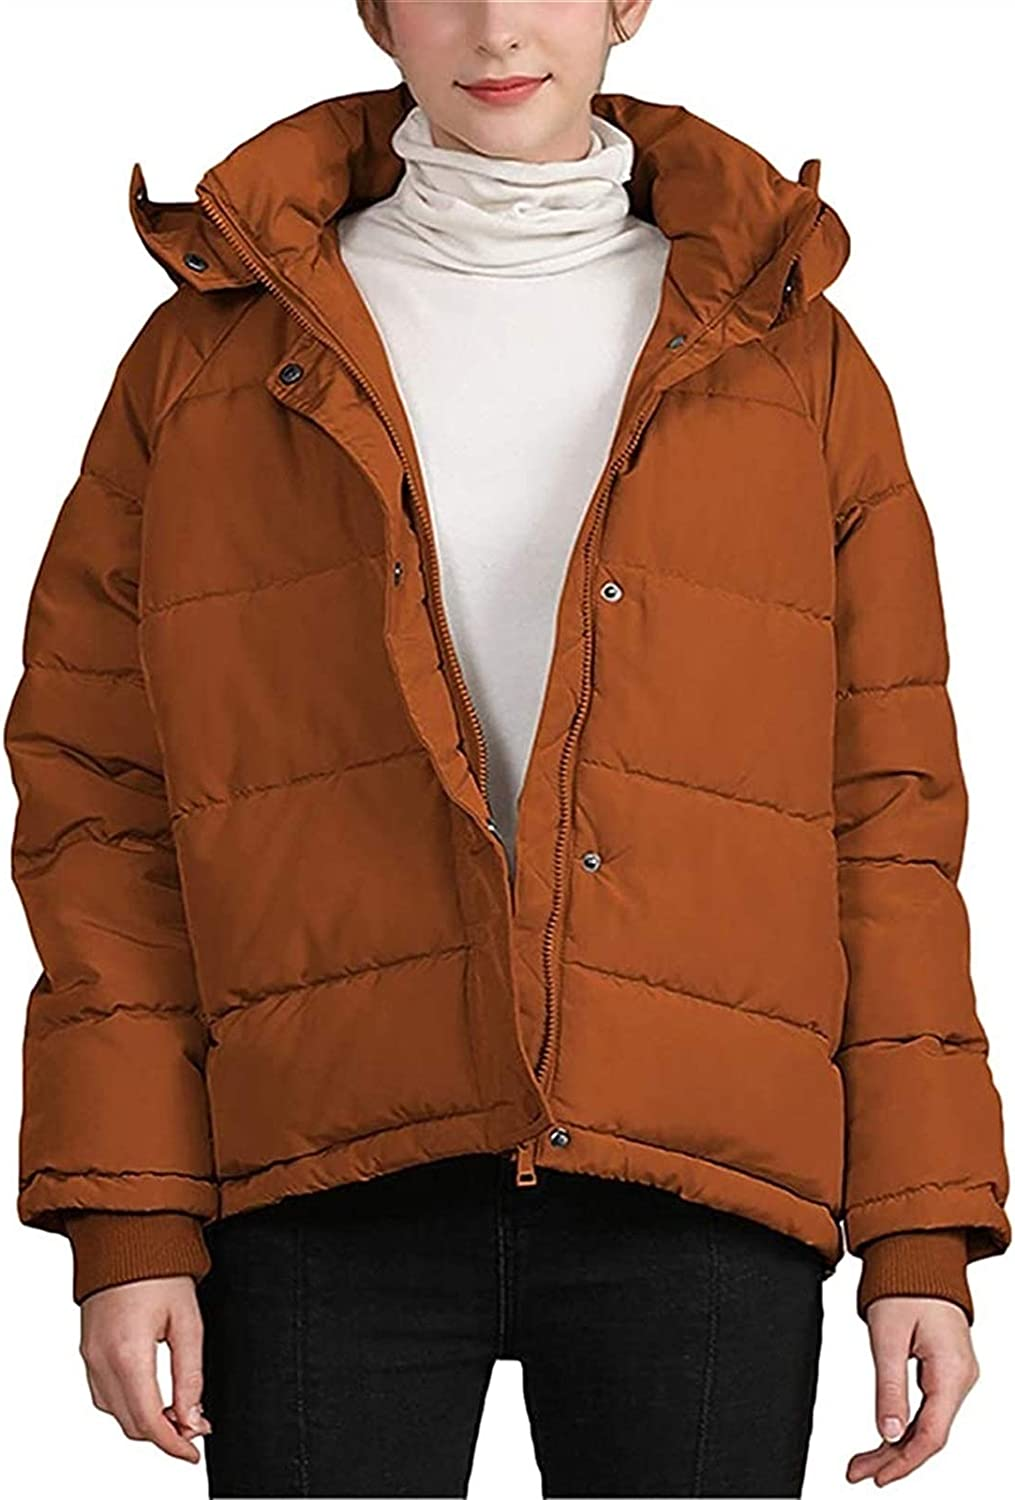 HSY SHOP Women Winter Quilted Jacket, Women Warm Oversized Coat Parka Quilted Jacket with Hood